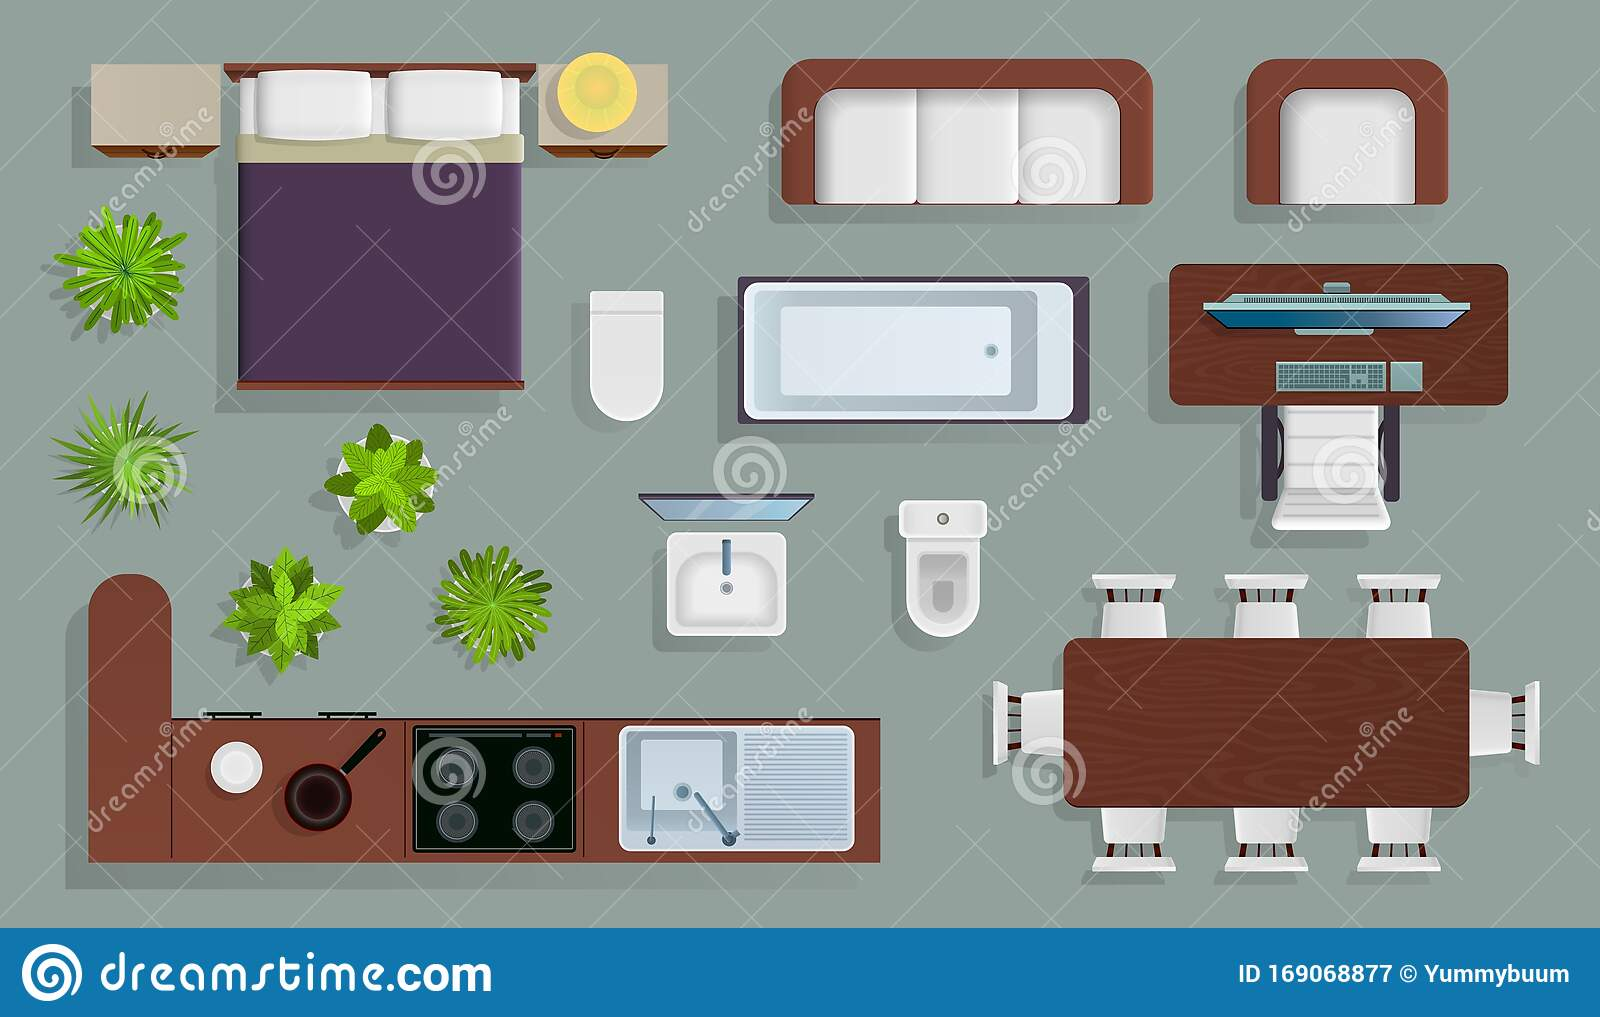 Interior Top View Office Furniture Design Elements Bedroom And Kitchen Bathroom Plan Store And Apartment View From Stock Vector Illustration Of Lounge Armchair 169068877